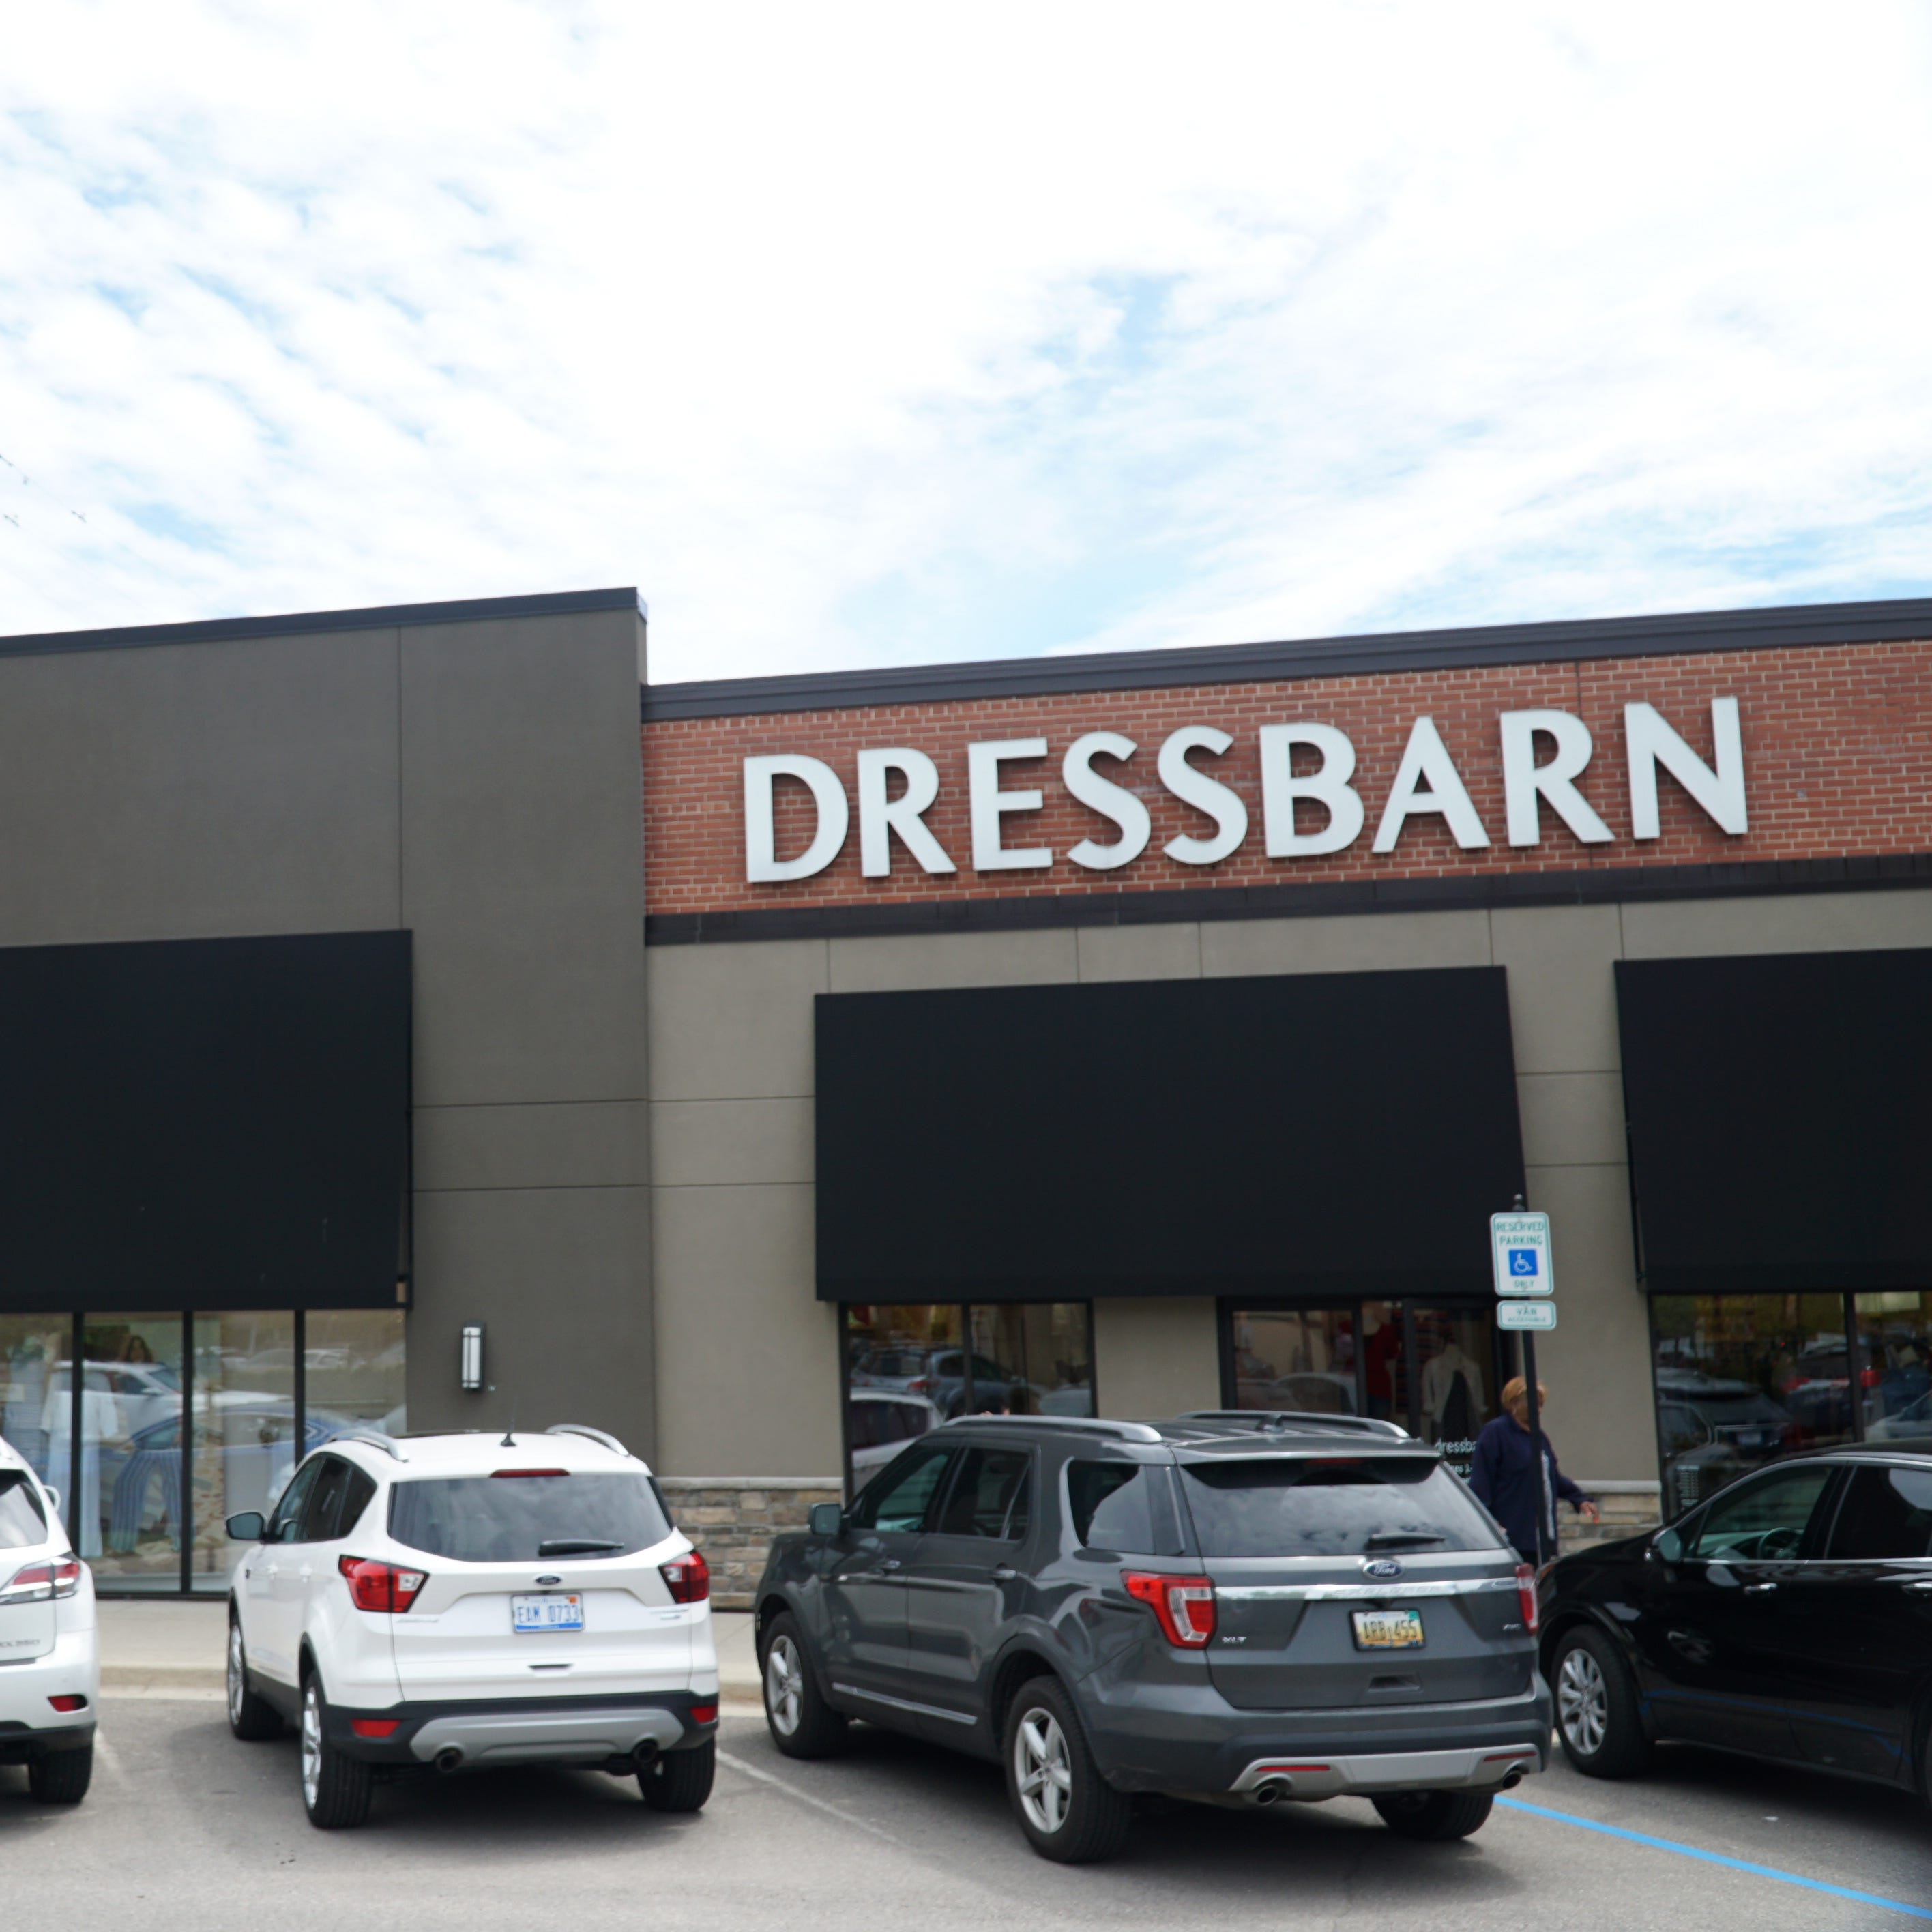 Dressbarn closing all its stores, including in Farmington, Livonia, Novi, Canton